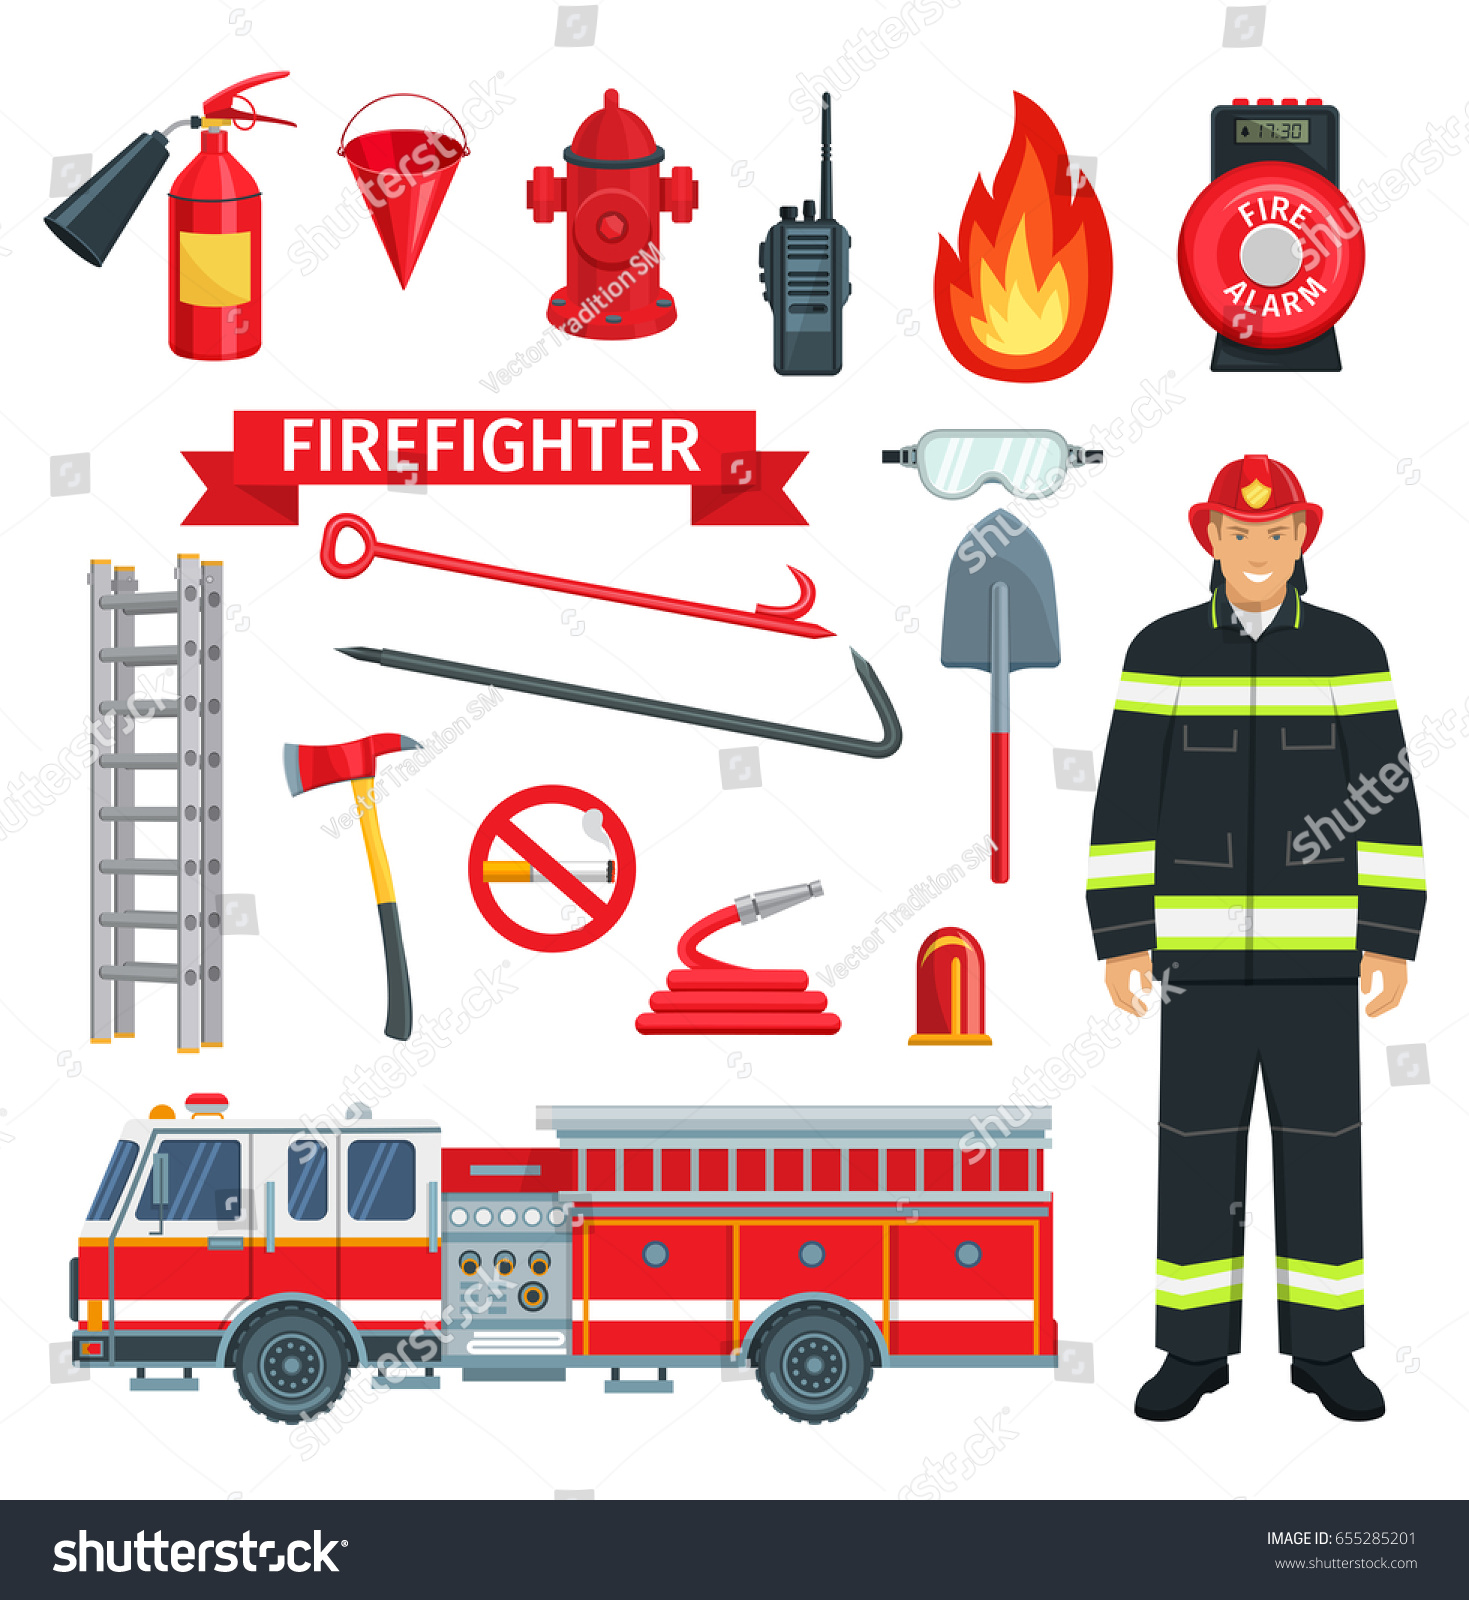 Fireman Firefighter Profession Fire Extinguishing Tools